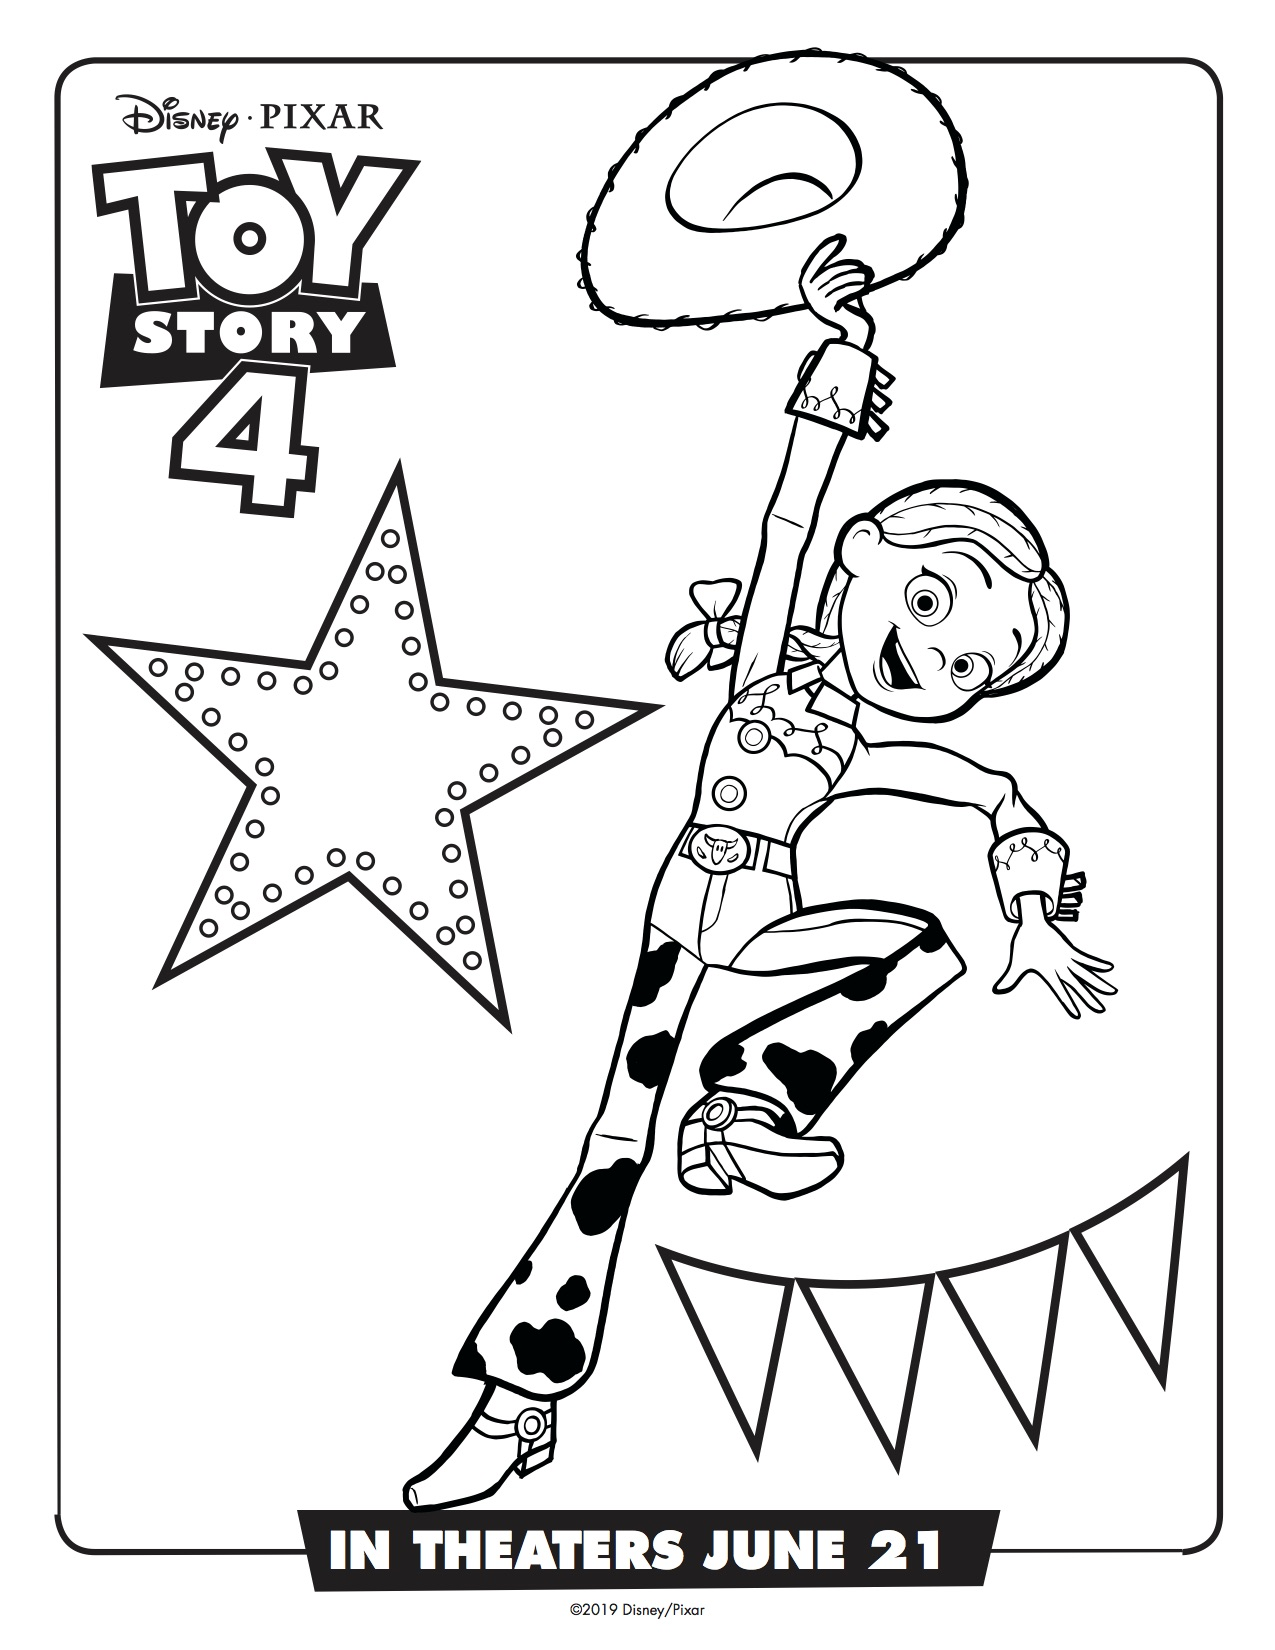 Toy-Story-4-Jessie-Printable-Coloring-Page Simply Sweet Days